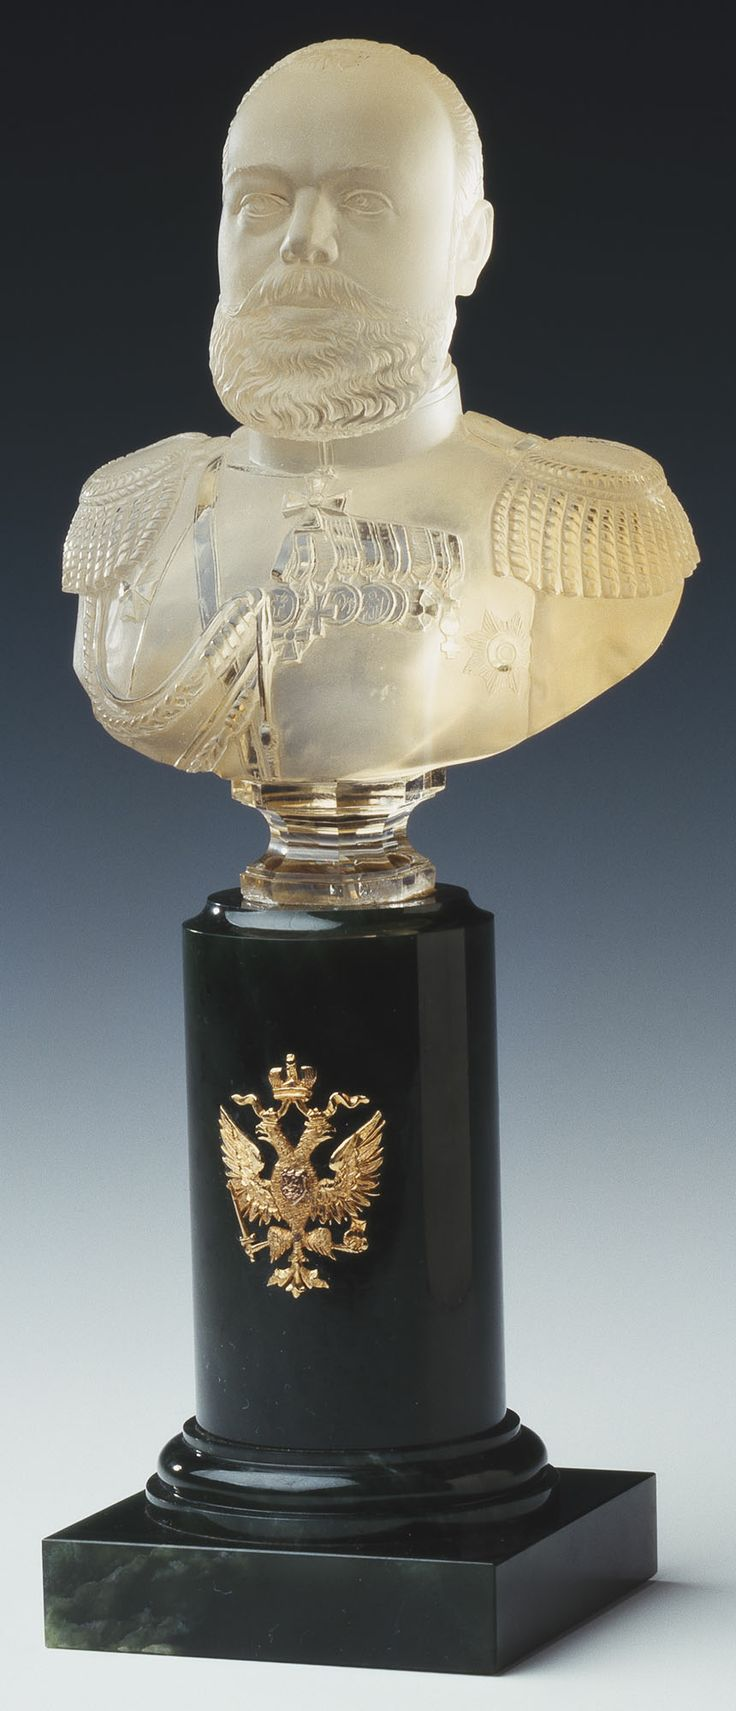 Bust of Tsar Alexander III made by Faberge, c. 1900